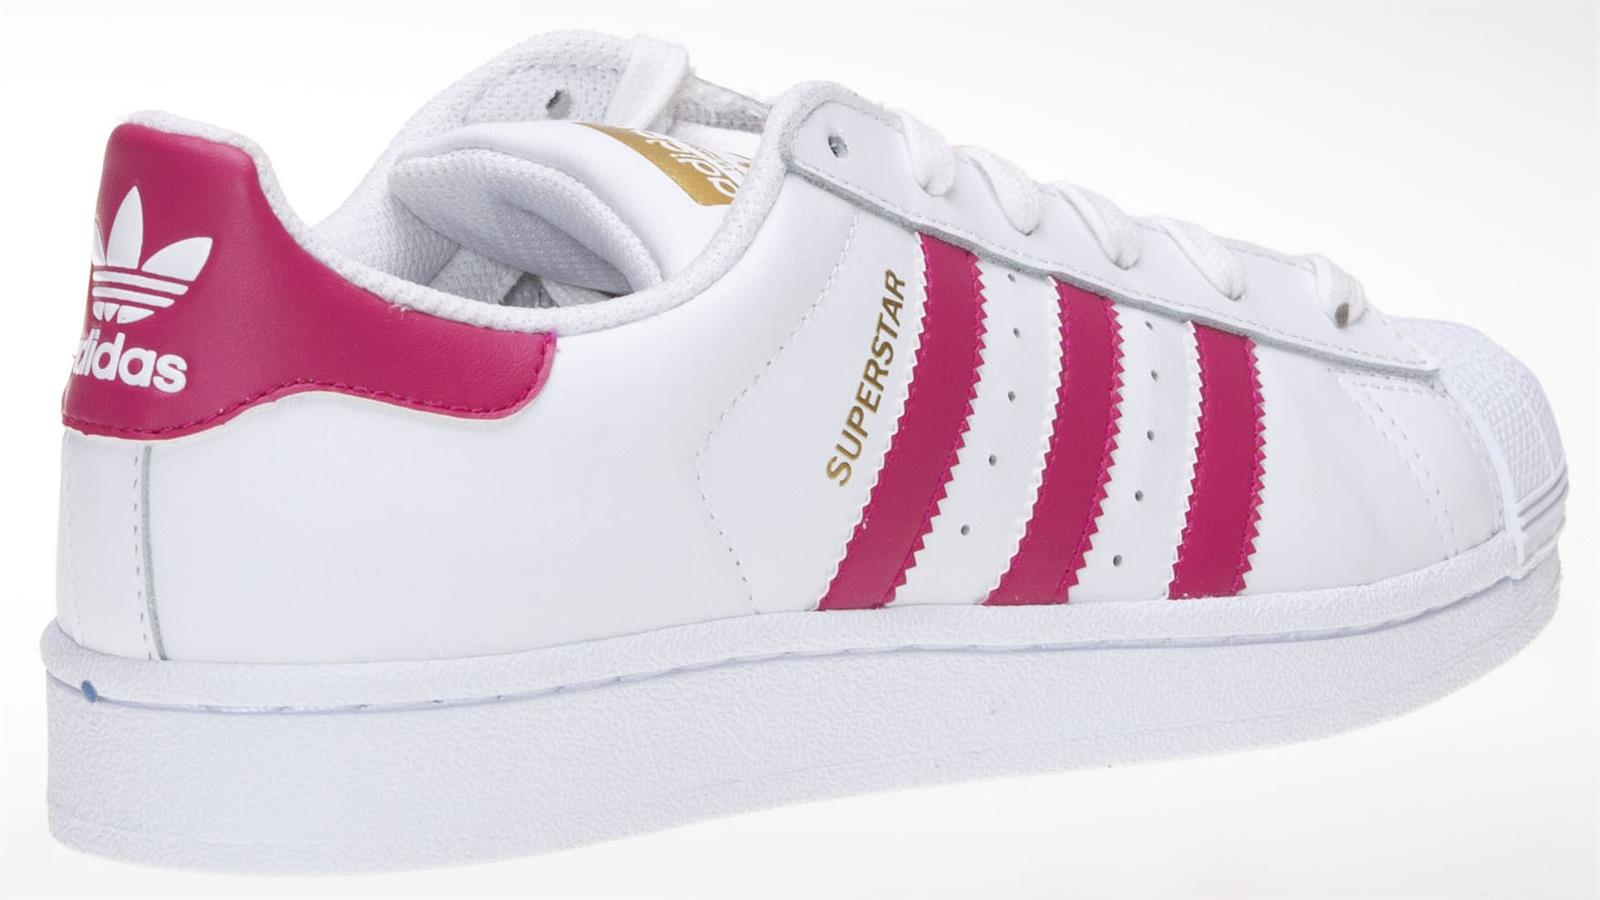 sale retailer a5aef 0f946 adidas Originals Women s Superstar Glossy Toe W Fashion Sneaker